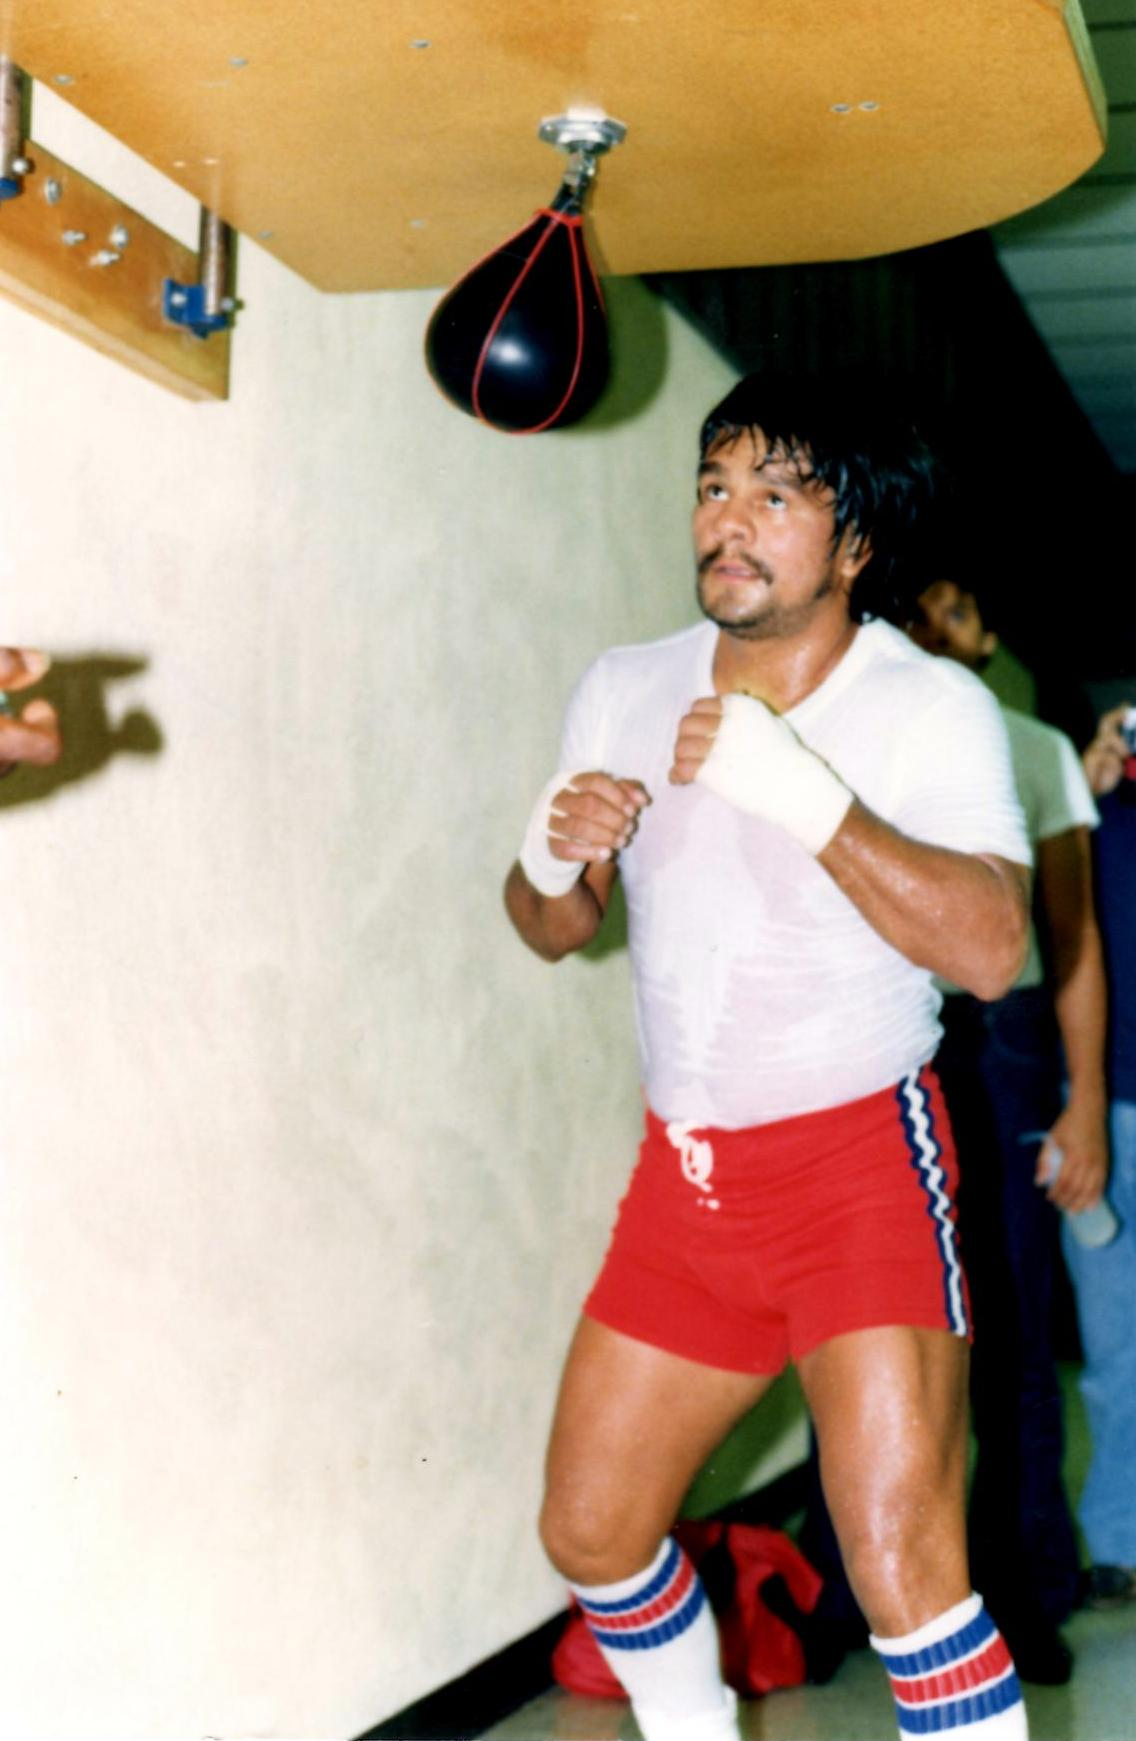 Roberto Duran in 1983 training for his bout with Davy Moore for the WBA jr. middleweight title